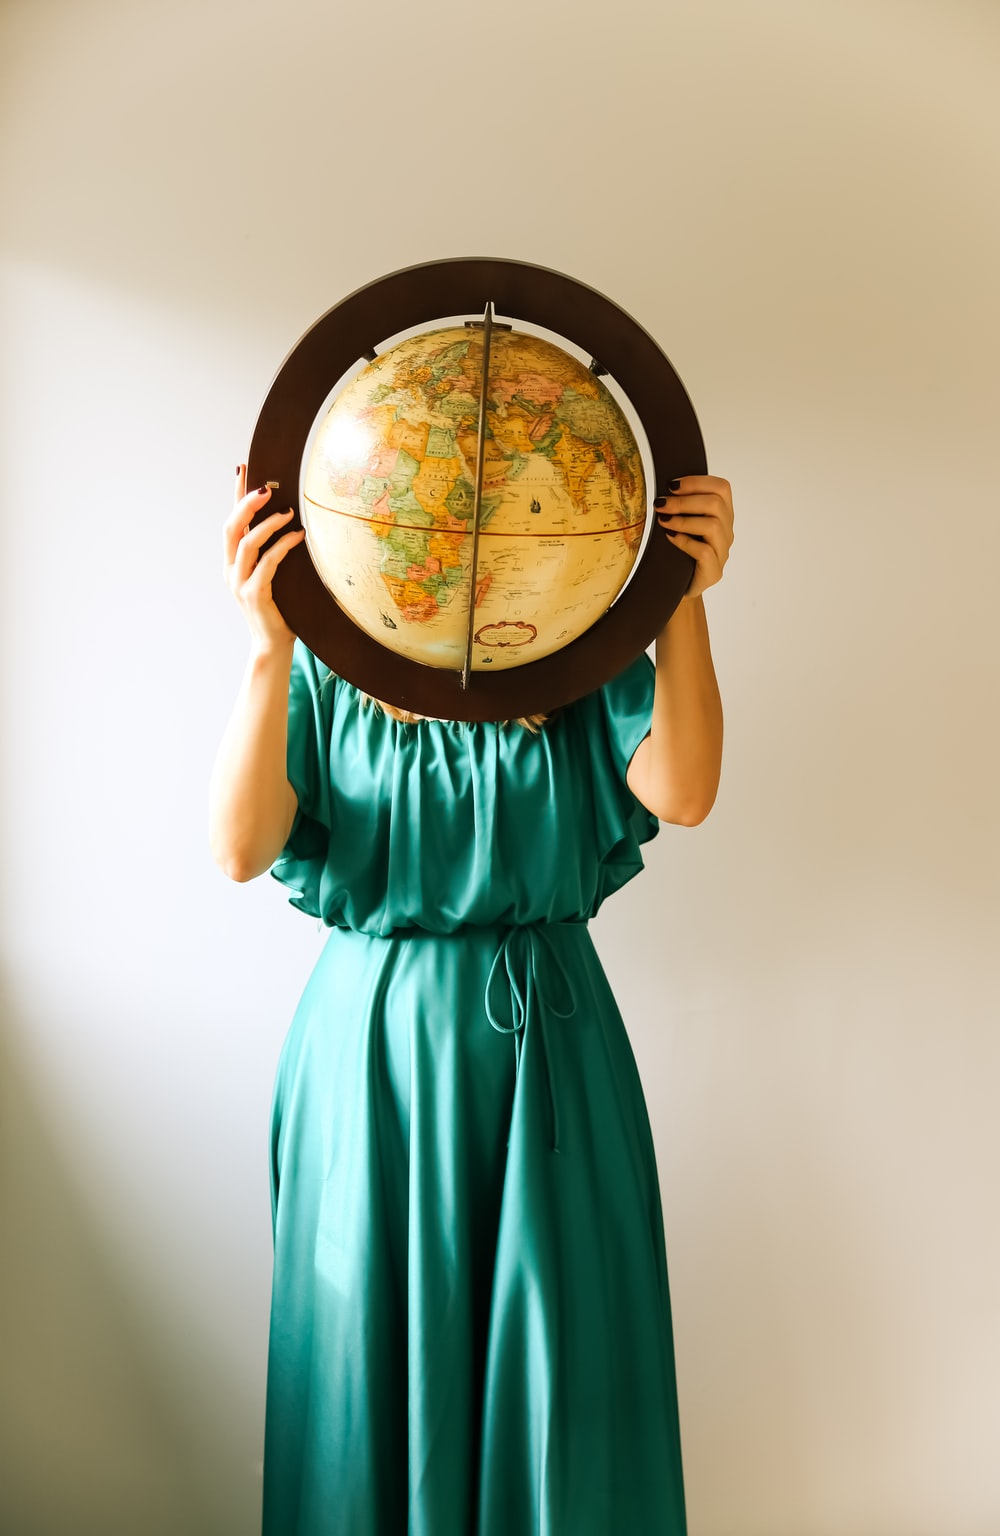 woman in teal dress holding round mirror